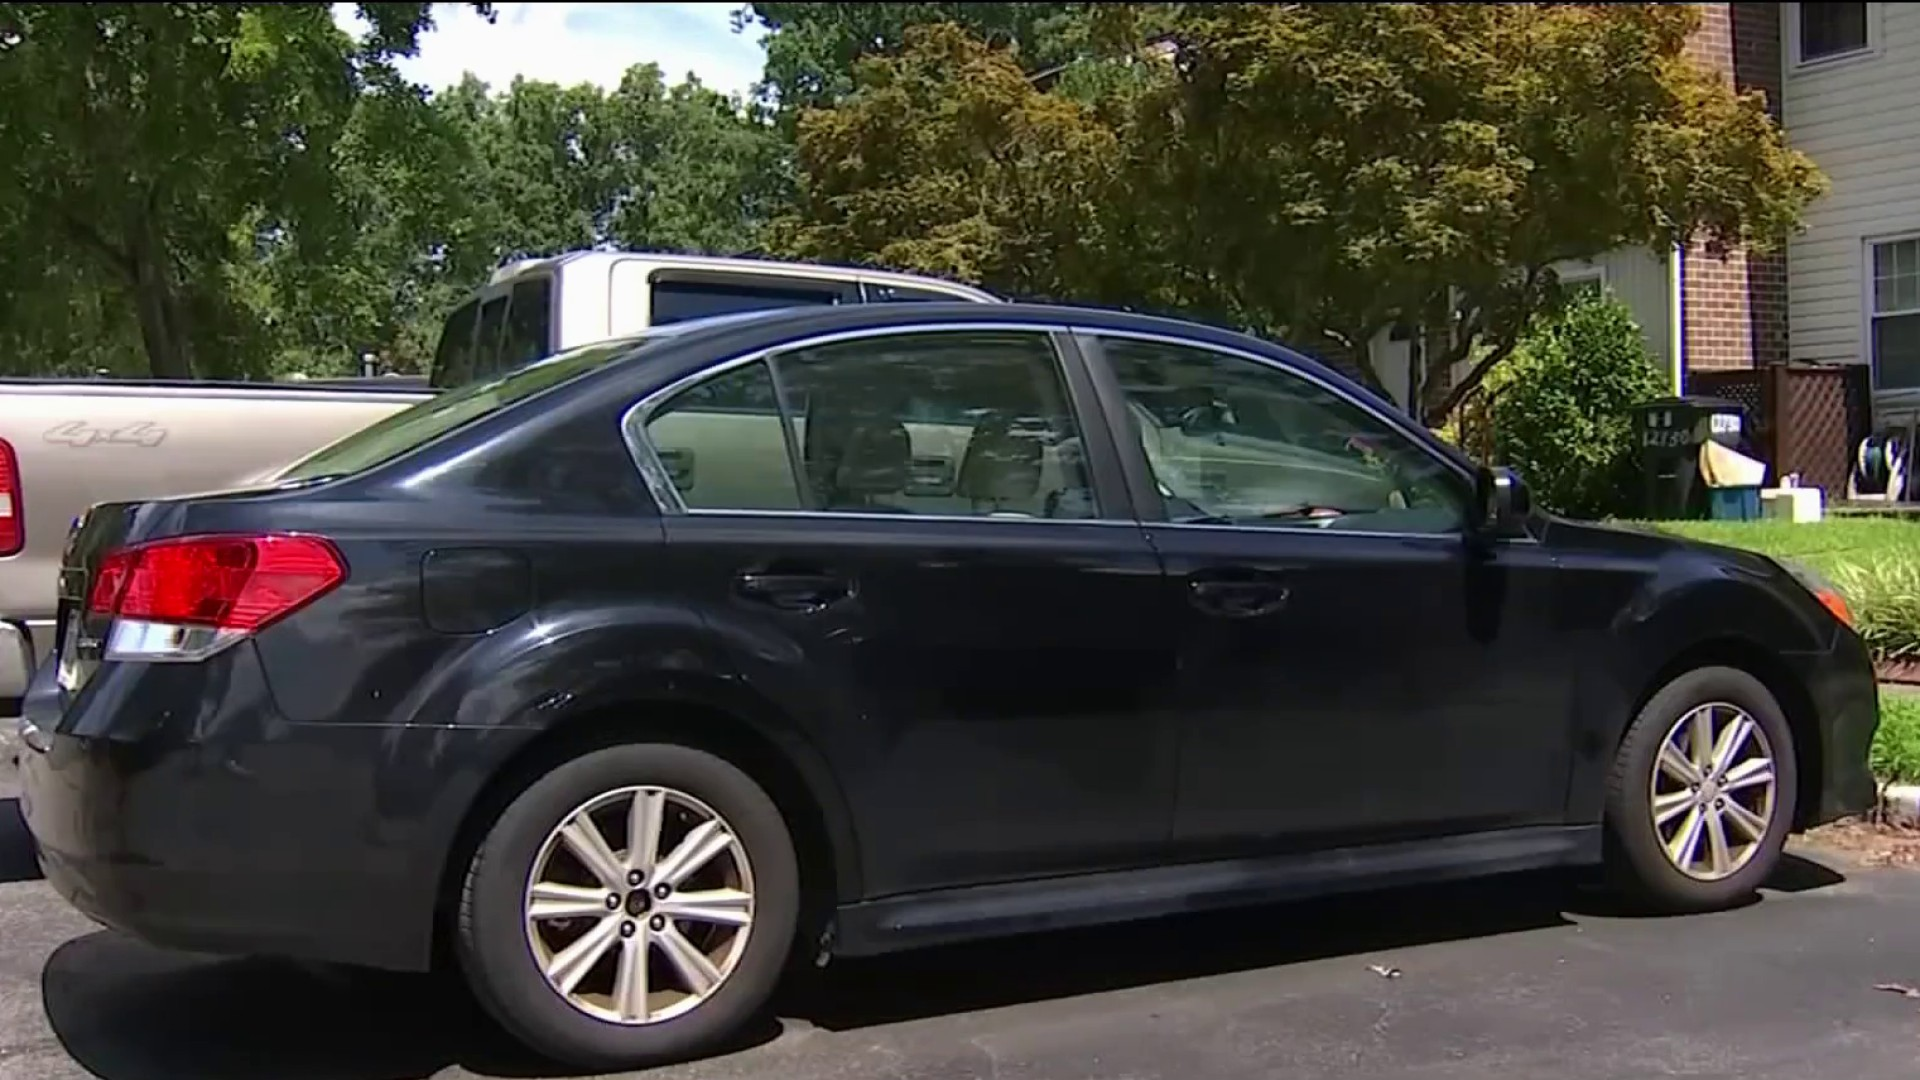 Family Fighting for Change After Car Wrongfully Repossessed